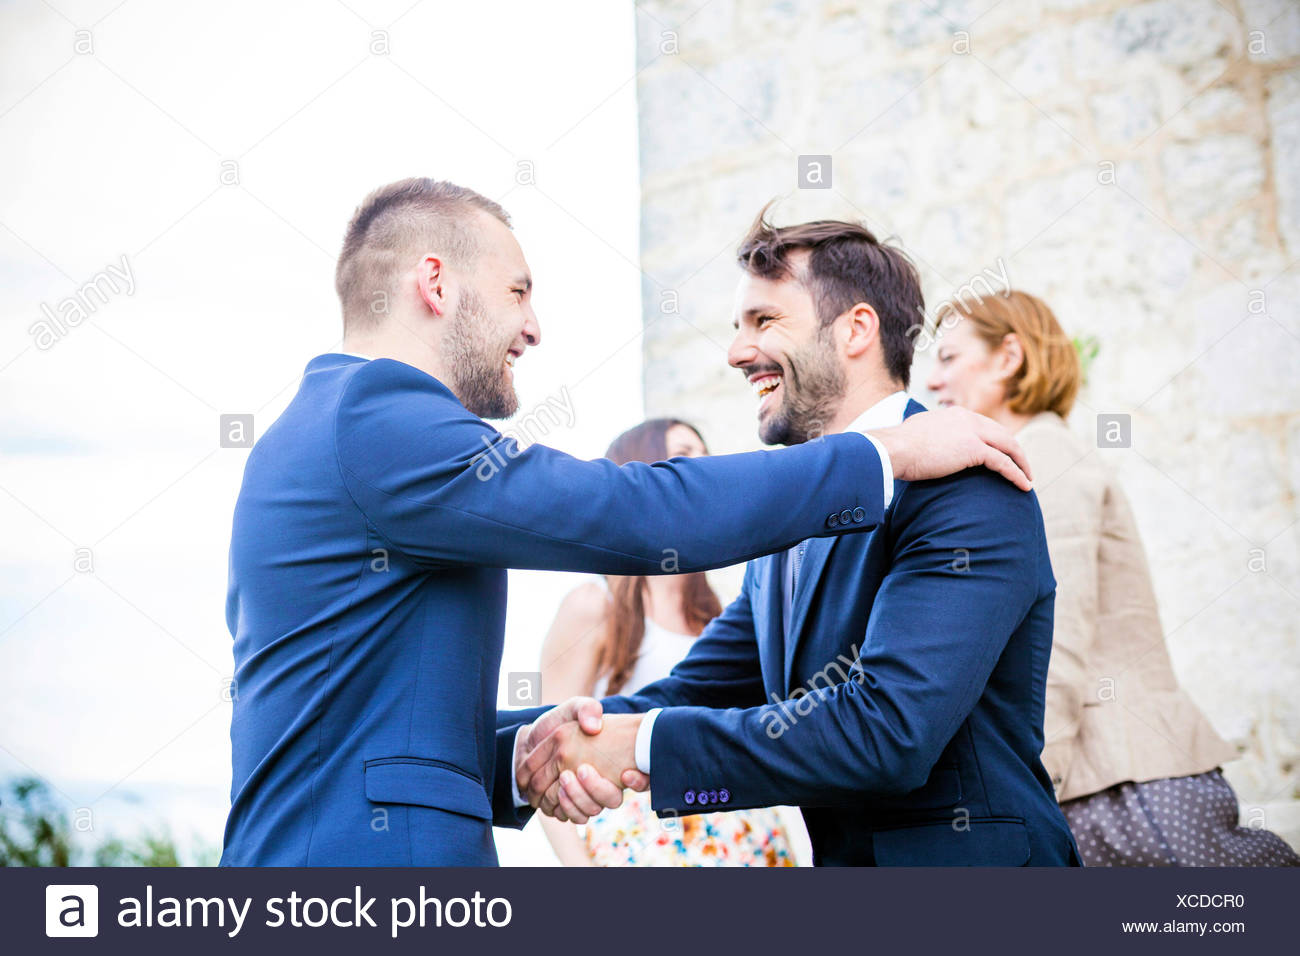 Bridegroom shaking hands with friend - Stock Image